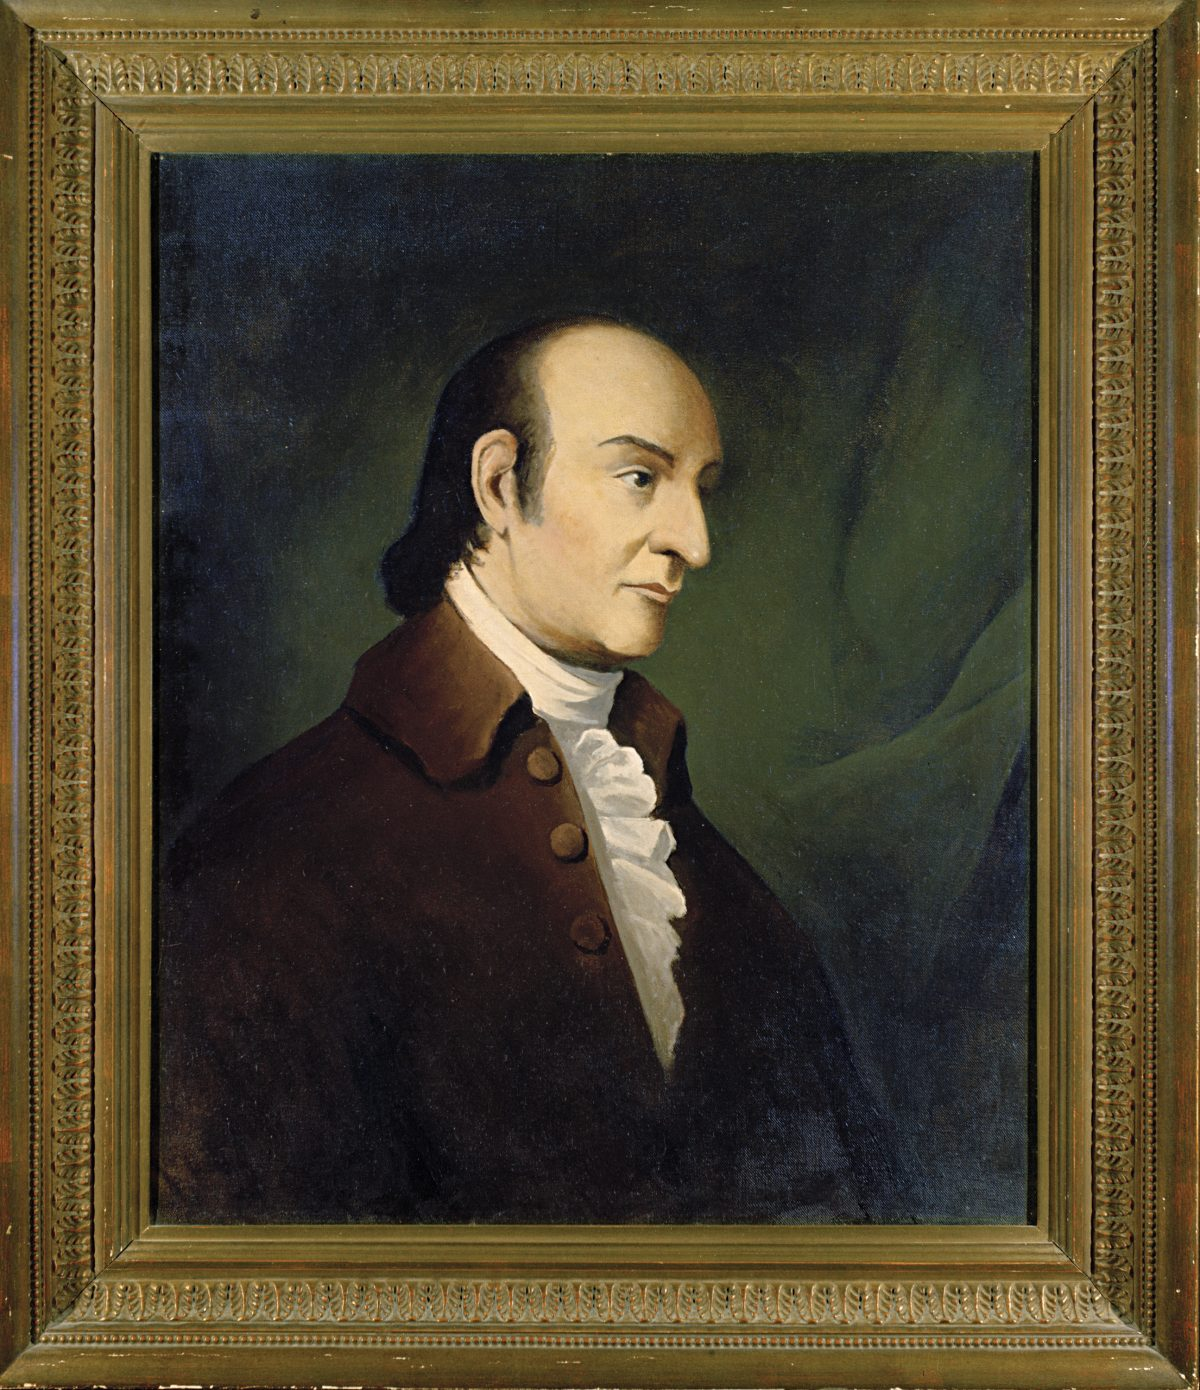 Portrait of George Wythe